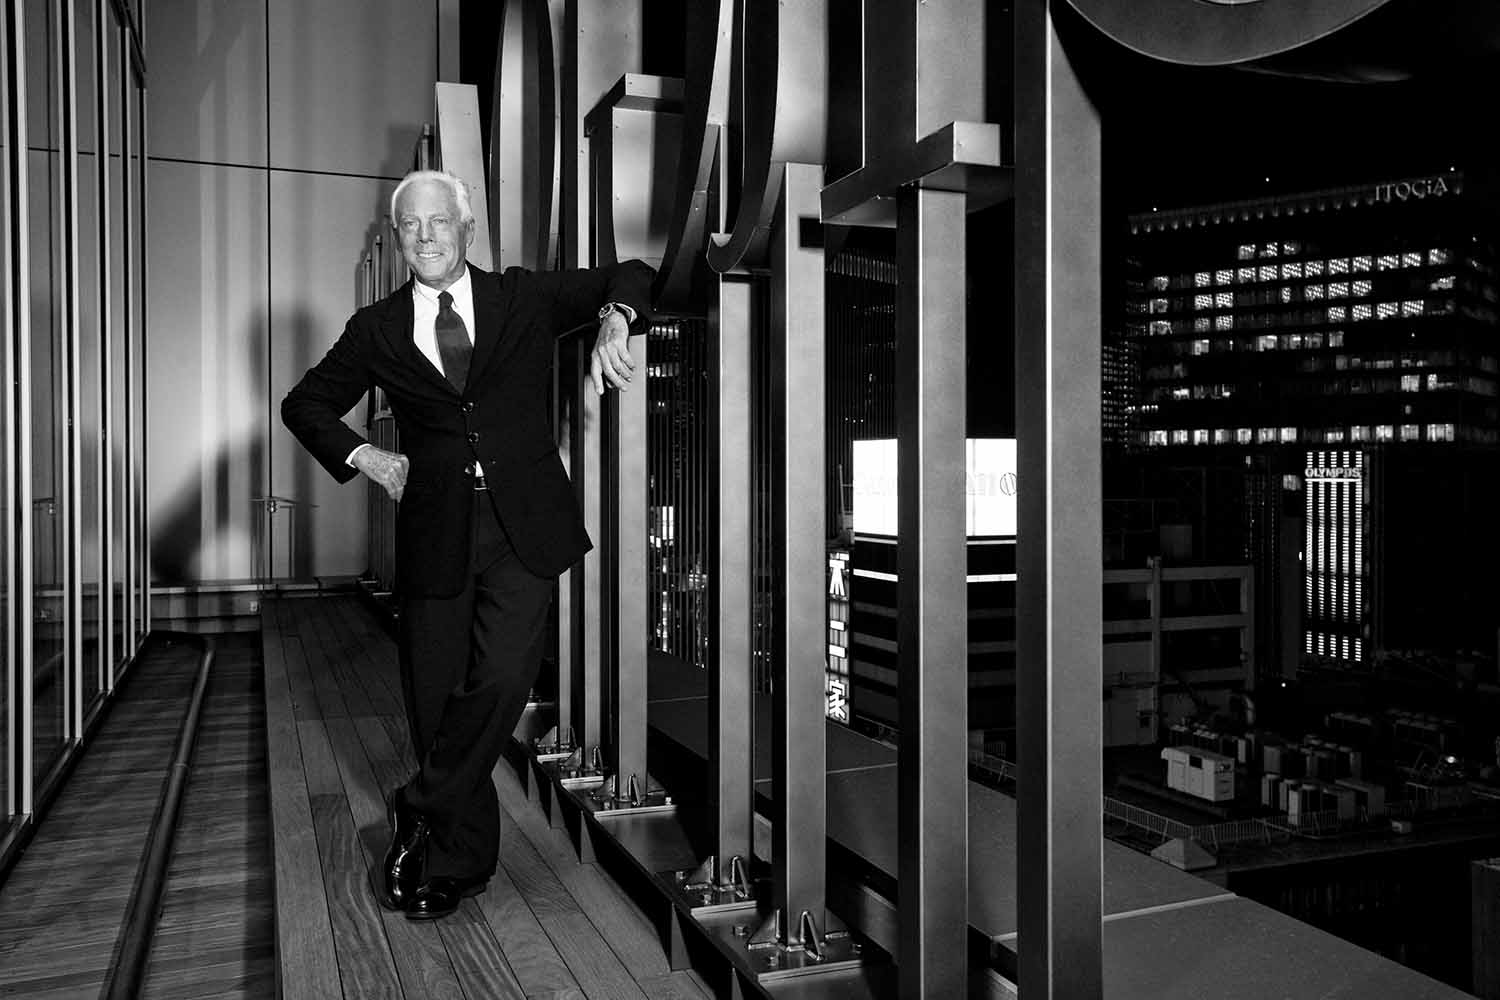 Giorgio Armani Visits Tokyo to Celebrate the Reopening of the Armani/Ginza Tower